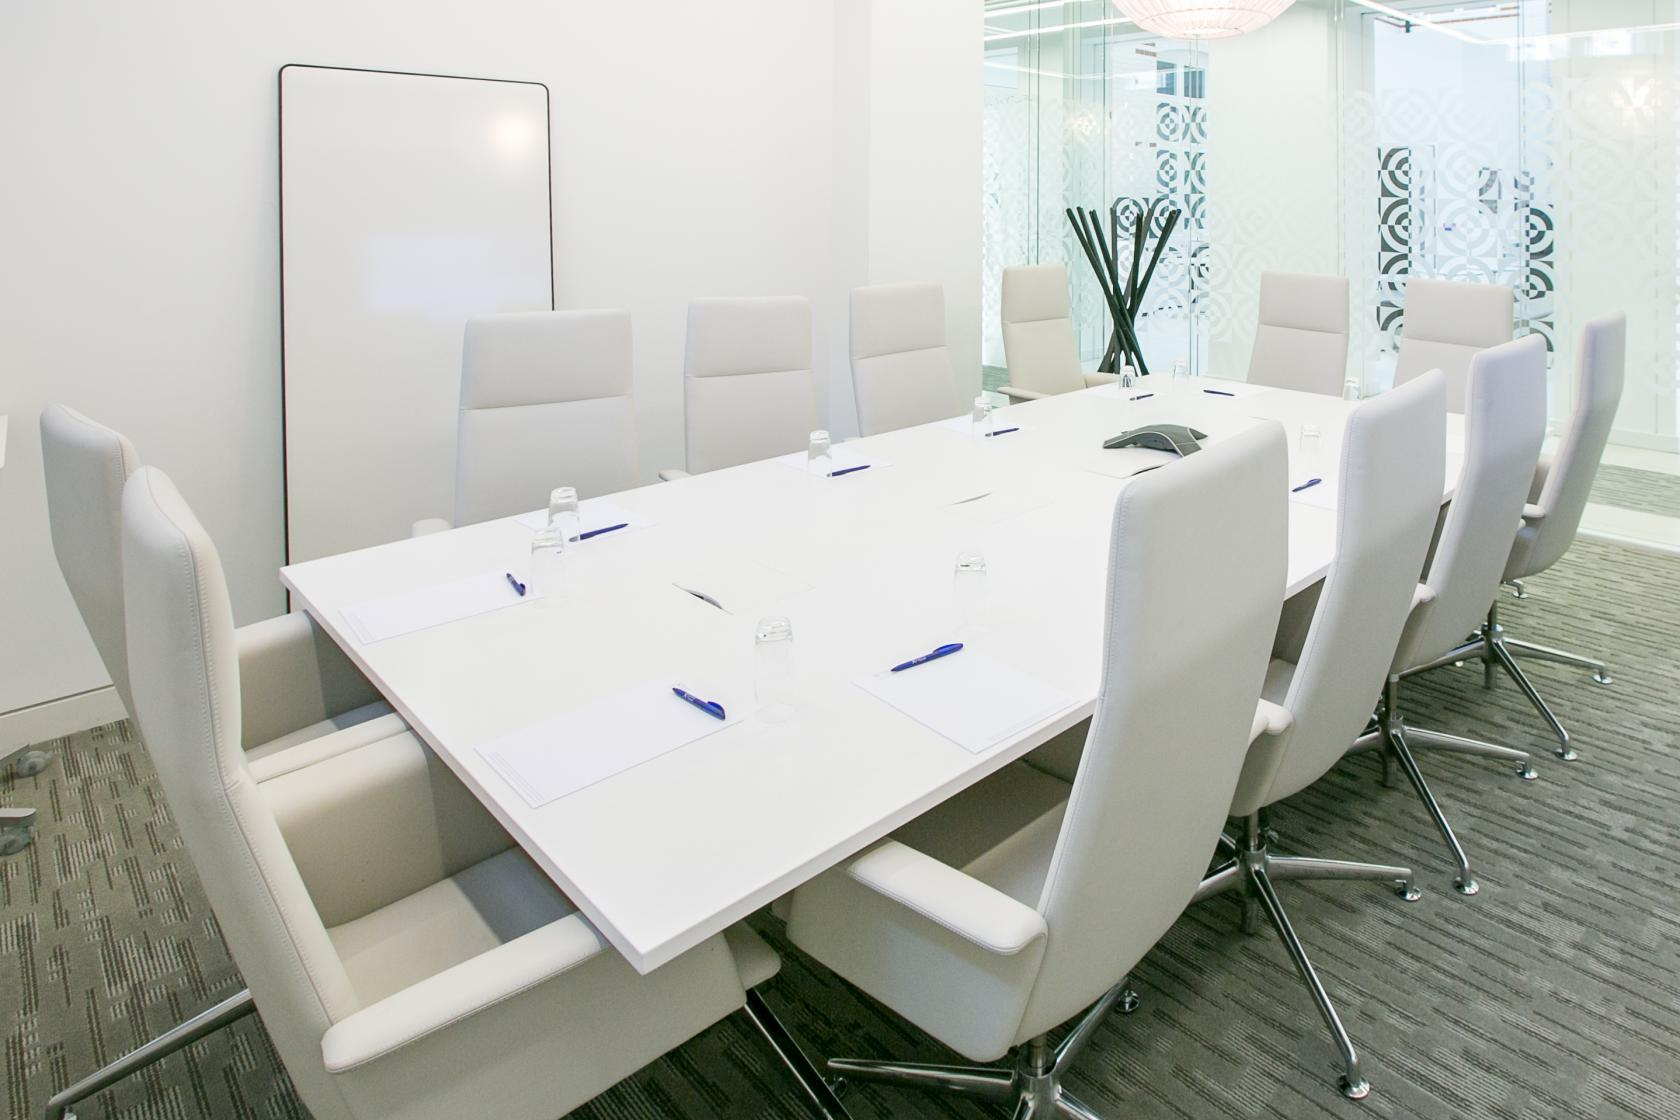 G10 at 30 Euston Square is a favourite for Covent Garden business meetings.